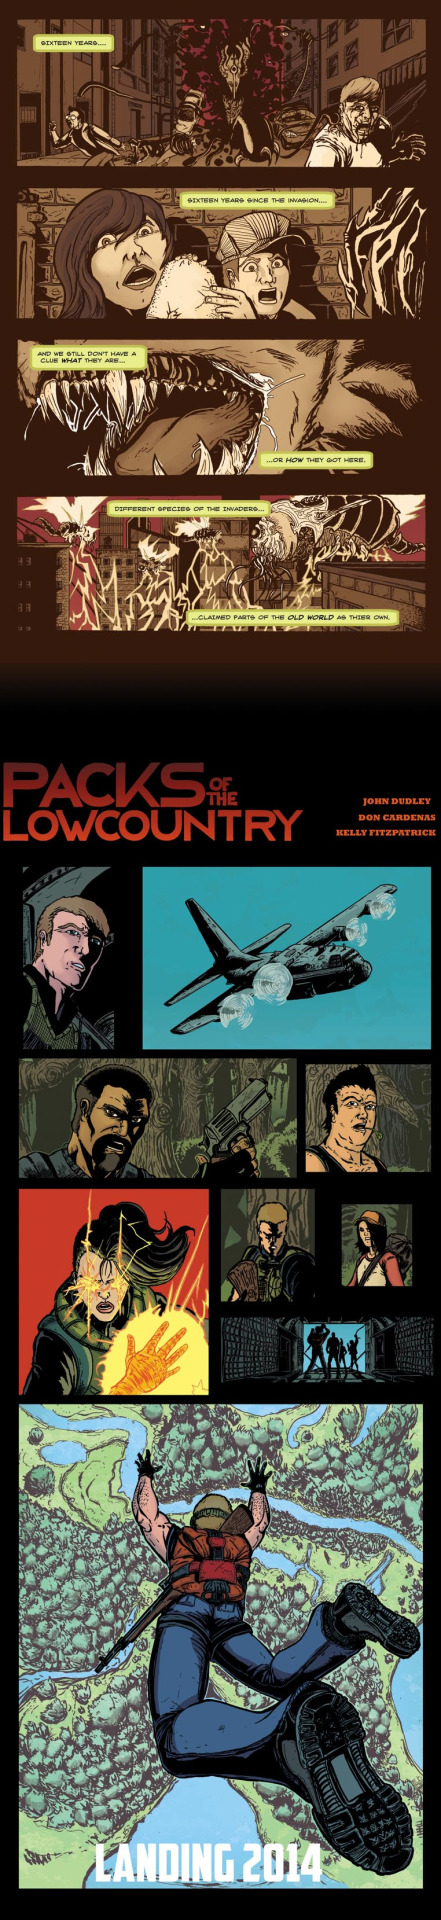 Packs Of The Low Country/ Written by John Dudley/ Inked by Don Cardenas/ Colored by Kelly Fitzpatrick   I'm working on coloring an independent book called Packs Of The Low Country. This is just a preview for the book, but more information can be found here: http://bullpenbulletinspodcast.com/forum/index.php?topic=17831.0